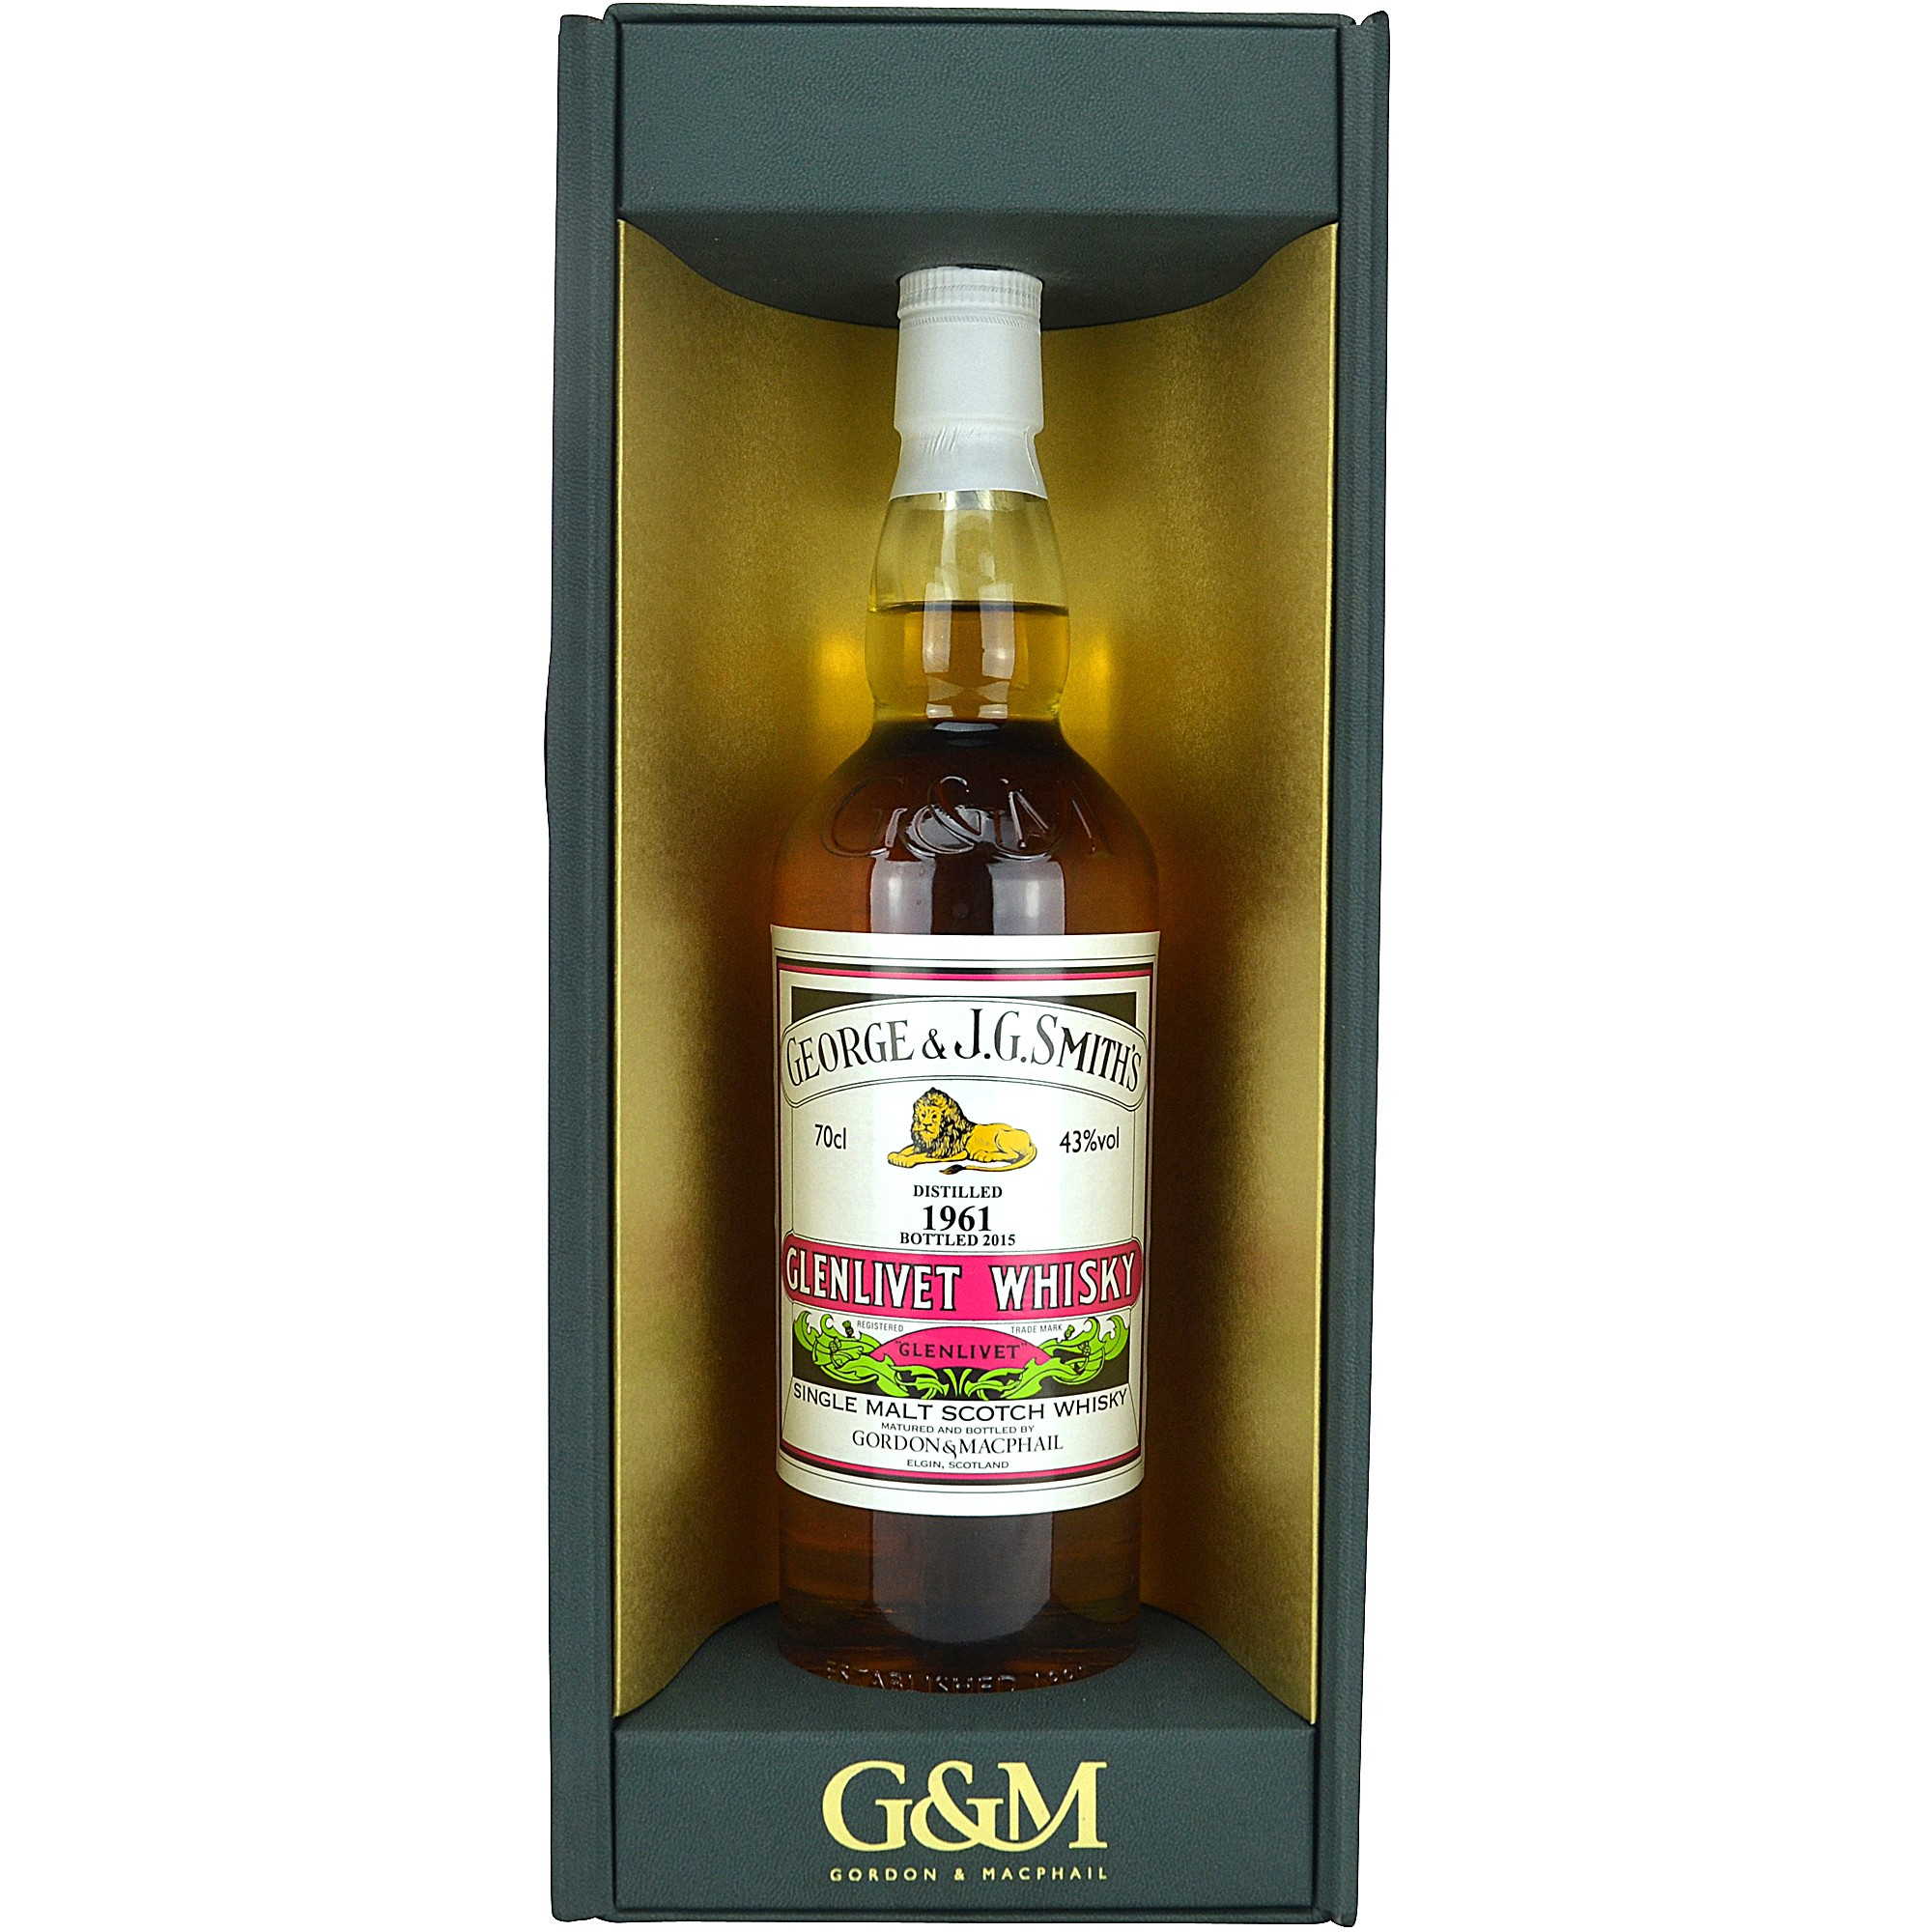 Glenlivet 1961/2015 (Gordon & MacPhail Distillery Label)